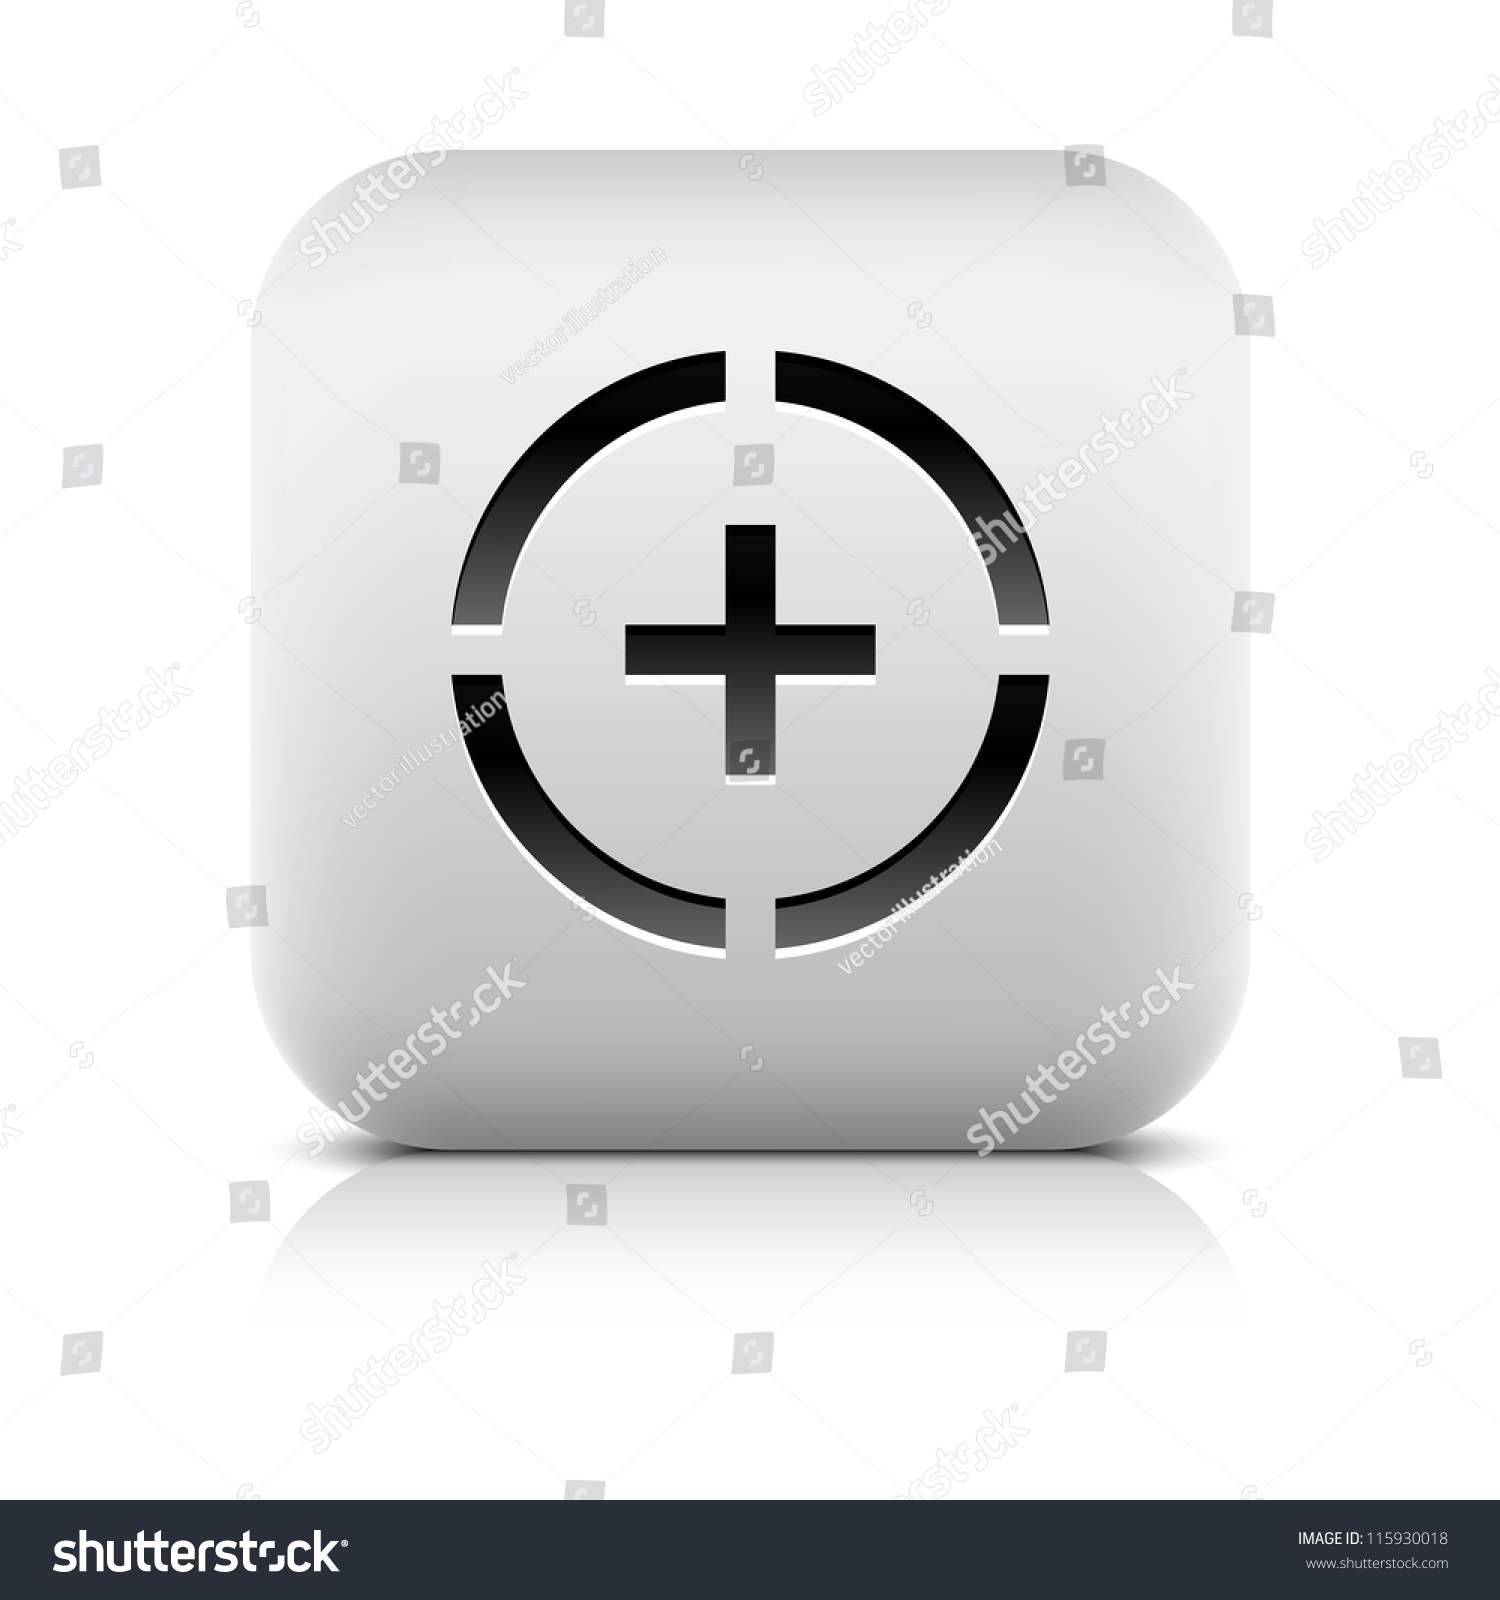 Stone Web Button Plus Sign In Circle Symbol White Rounded